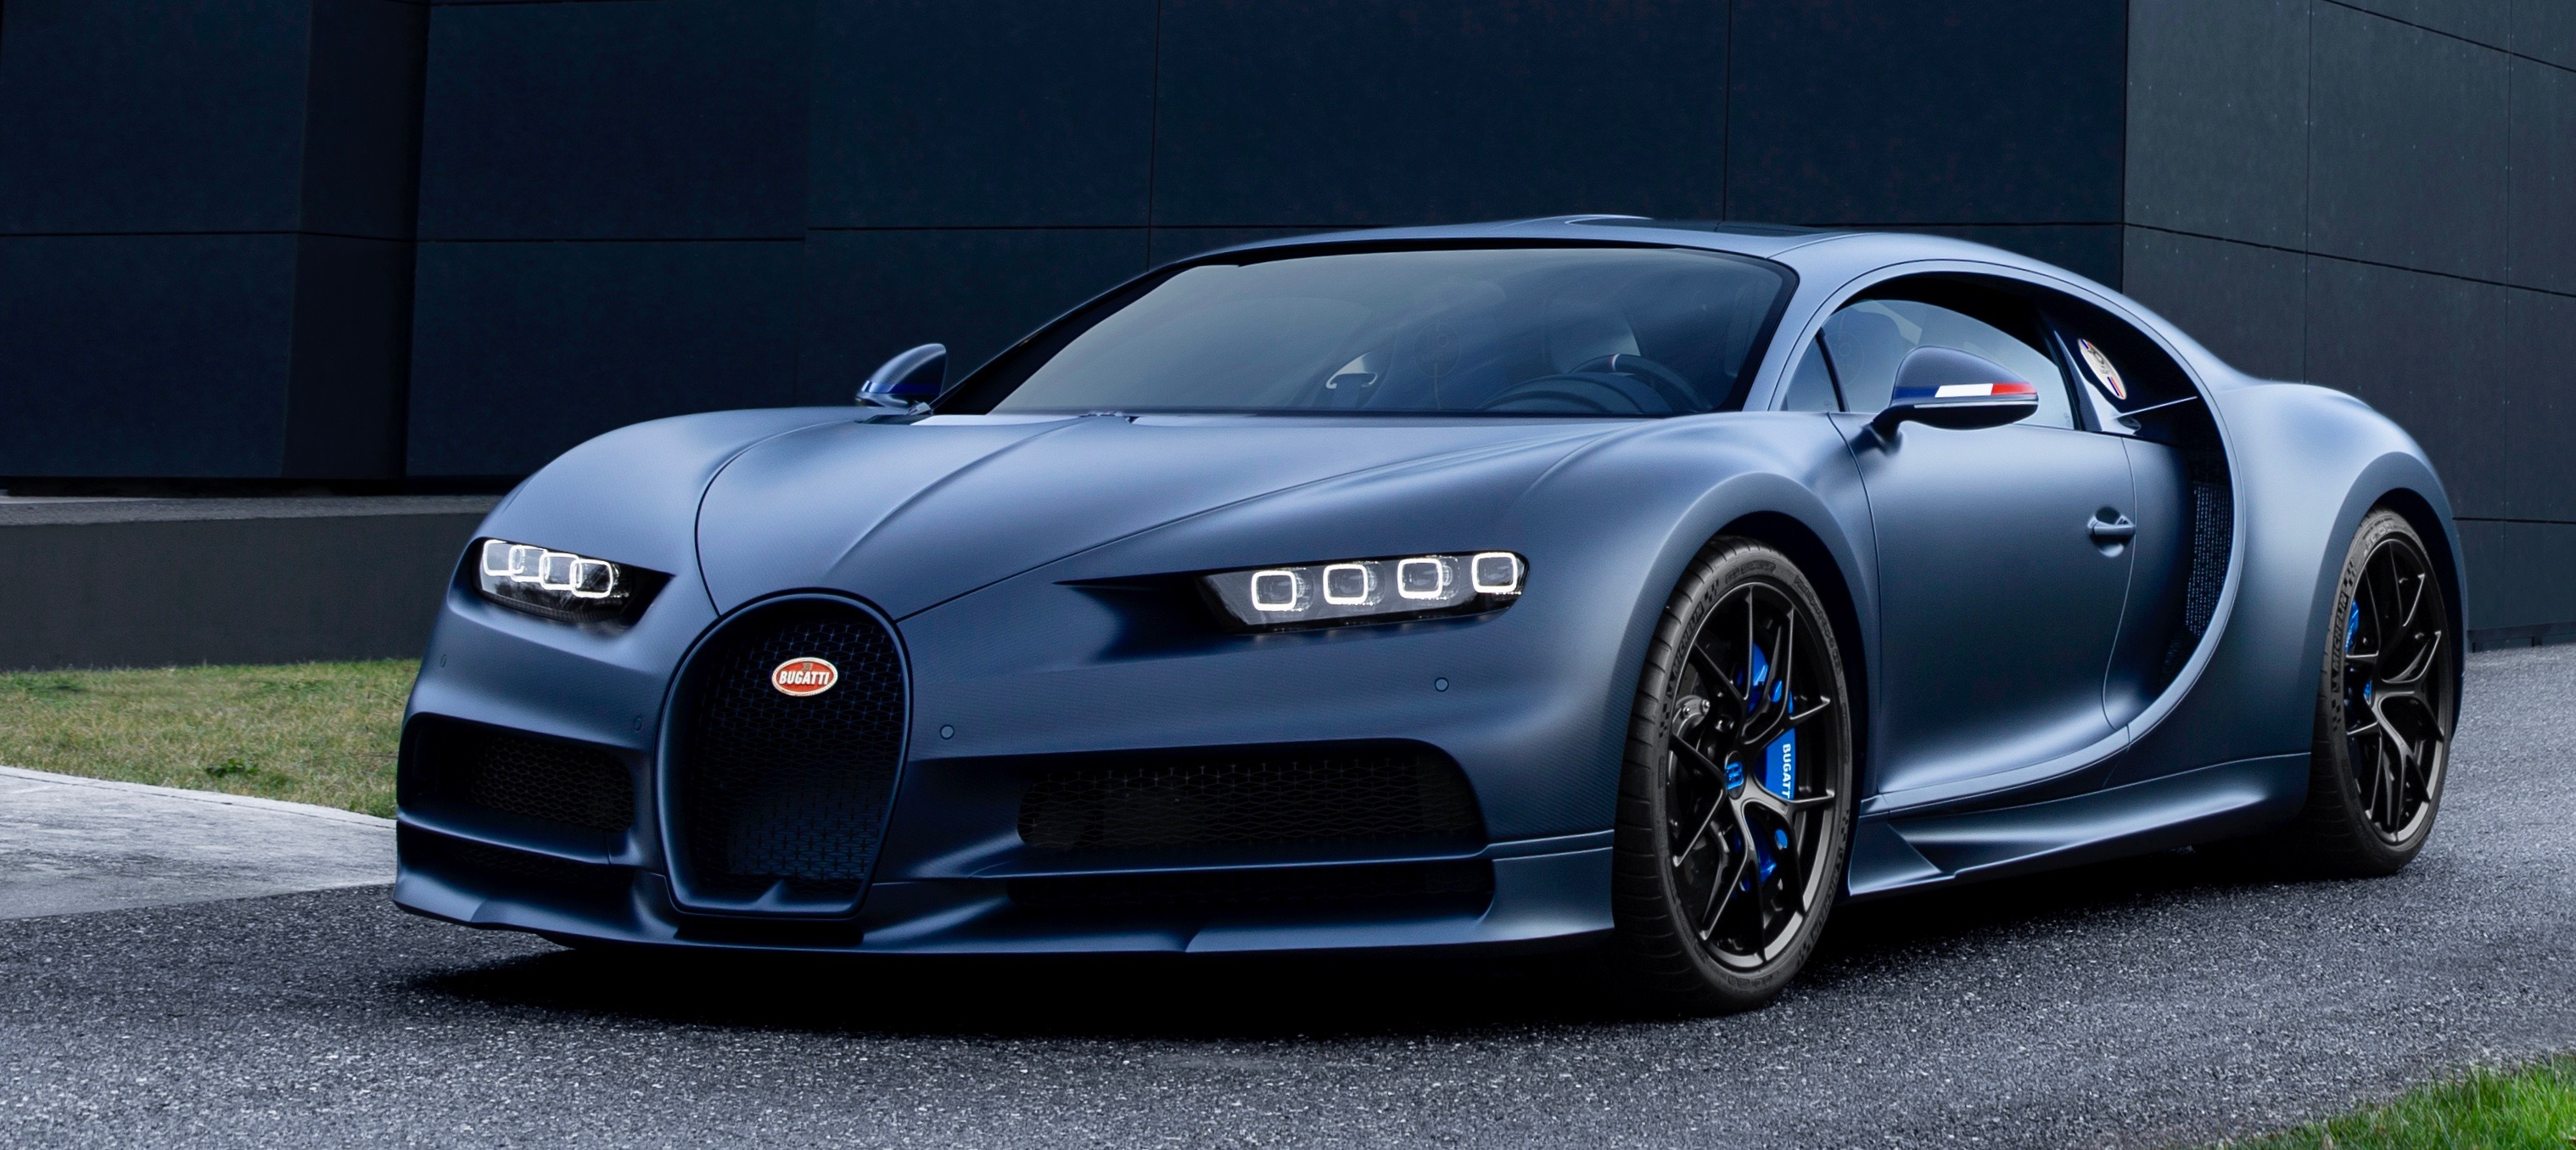 Bugatti, Sold out! Bugatti unveils new models priced at $12.4 and $3.39 million, ClassicCars.com Journal